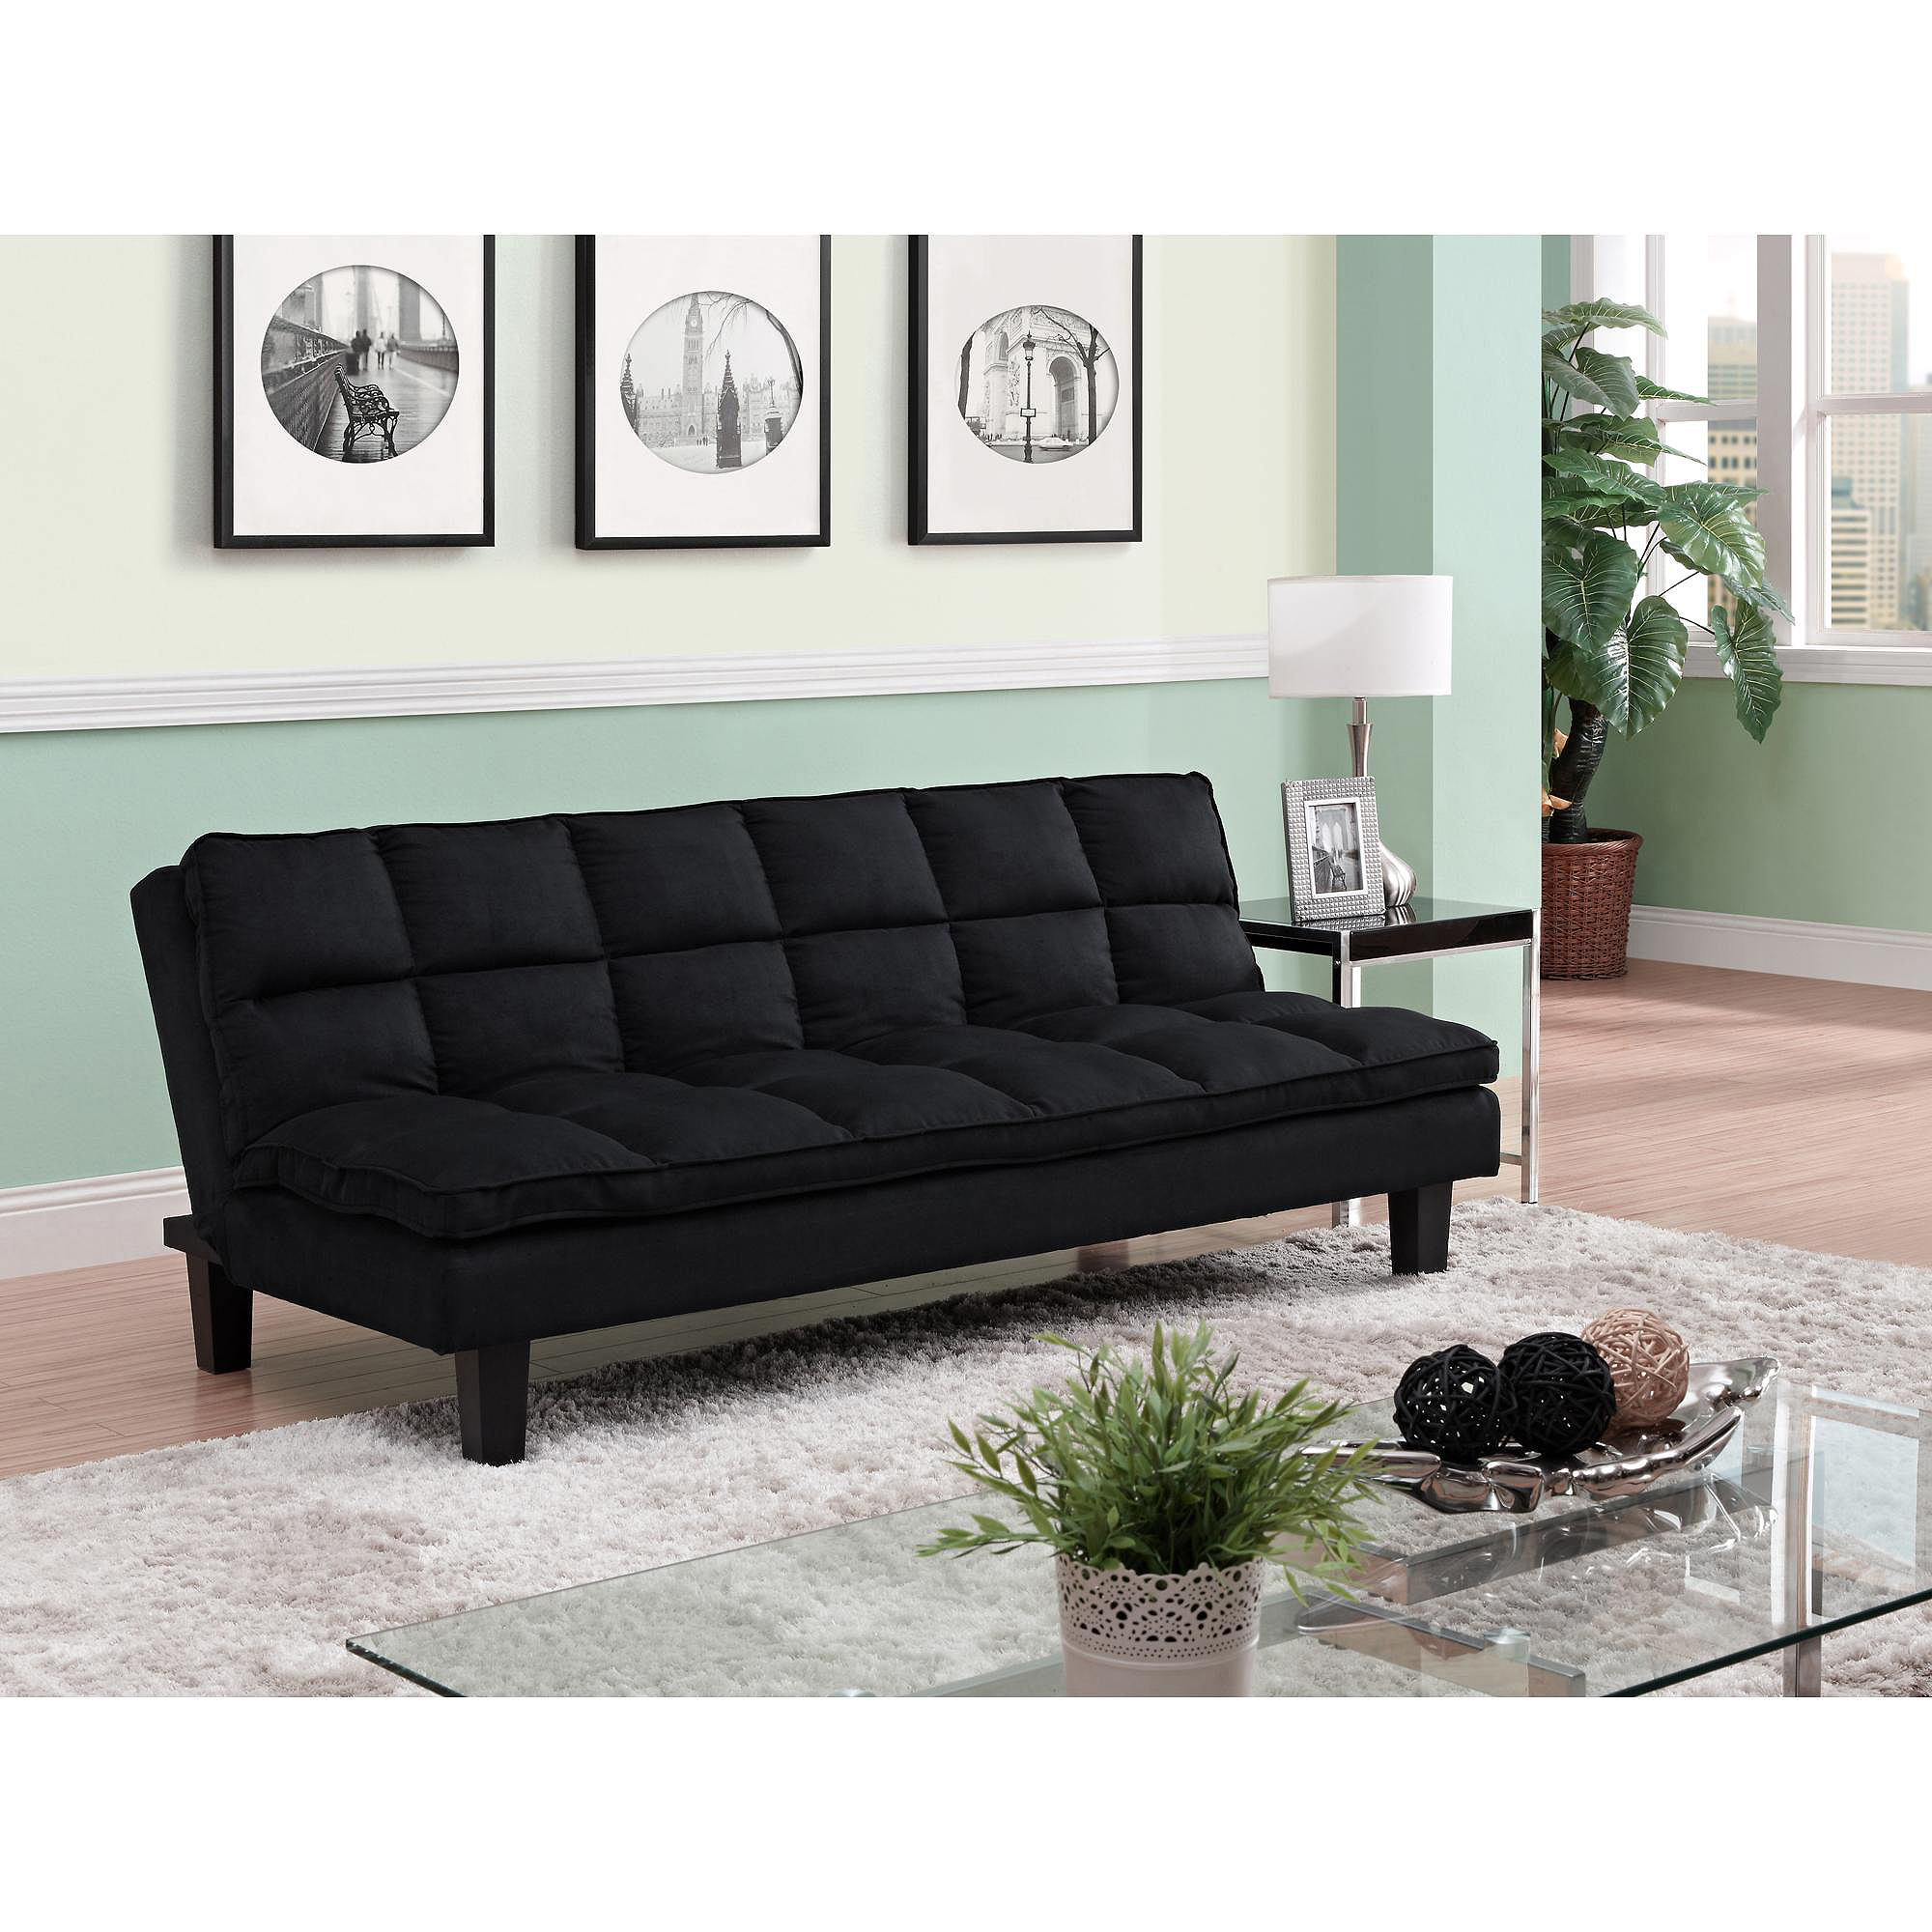 Allegra Pillow Top Futon, Black   Walmart.com